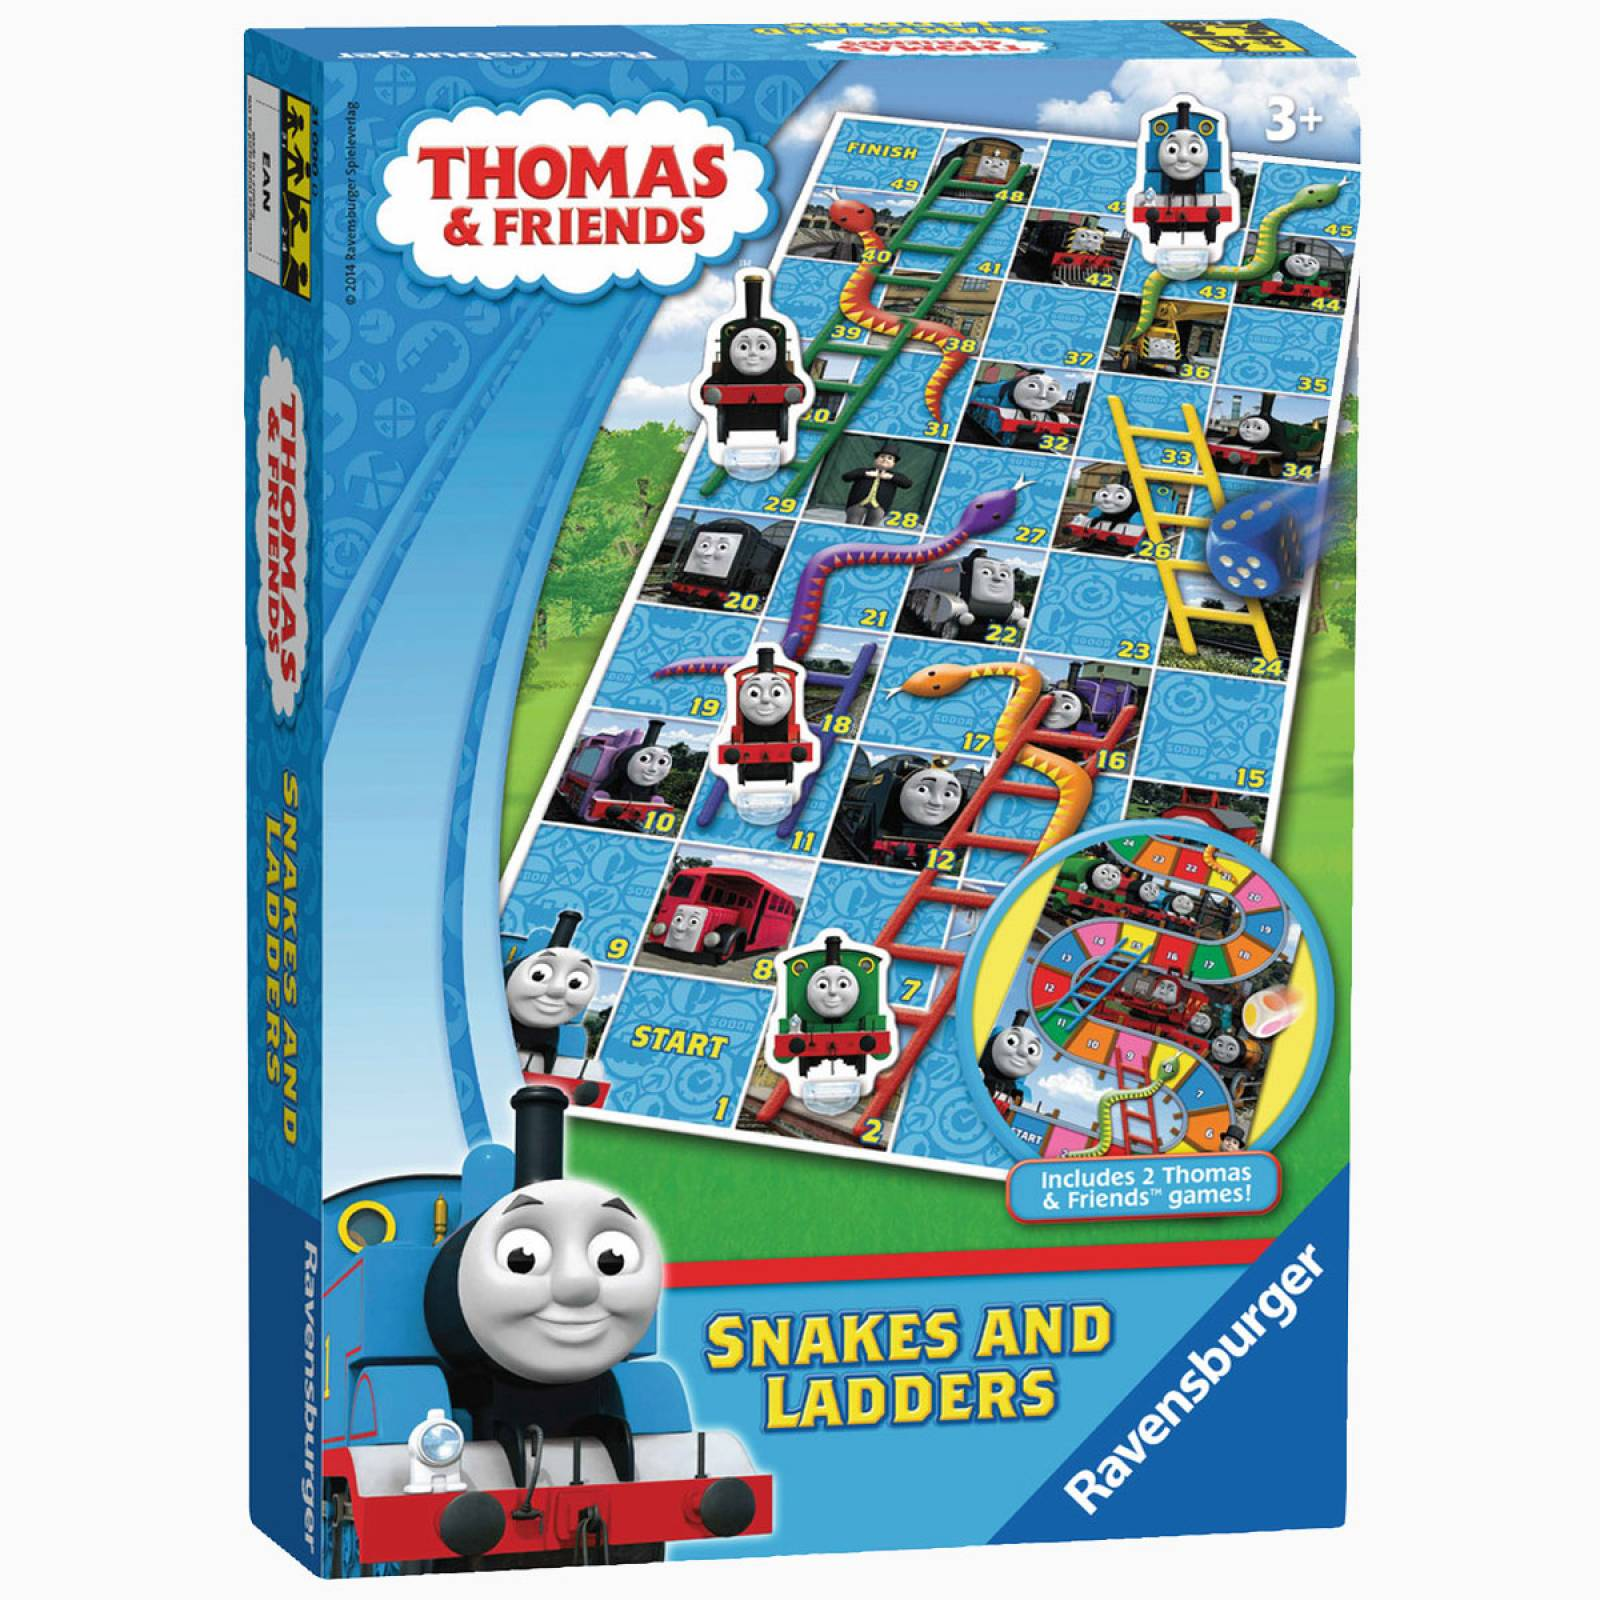 Thomas & Friends Snakes And Ladders Game 3+